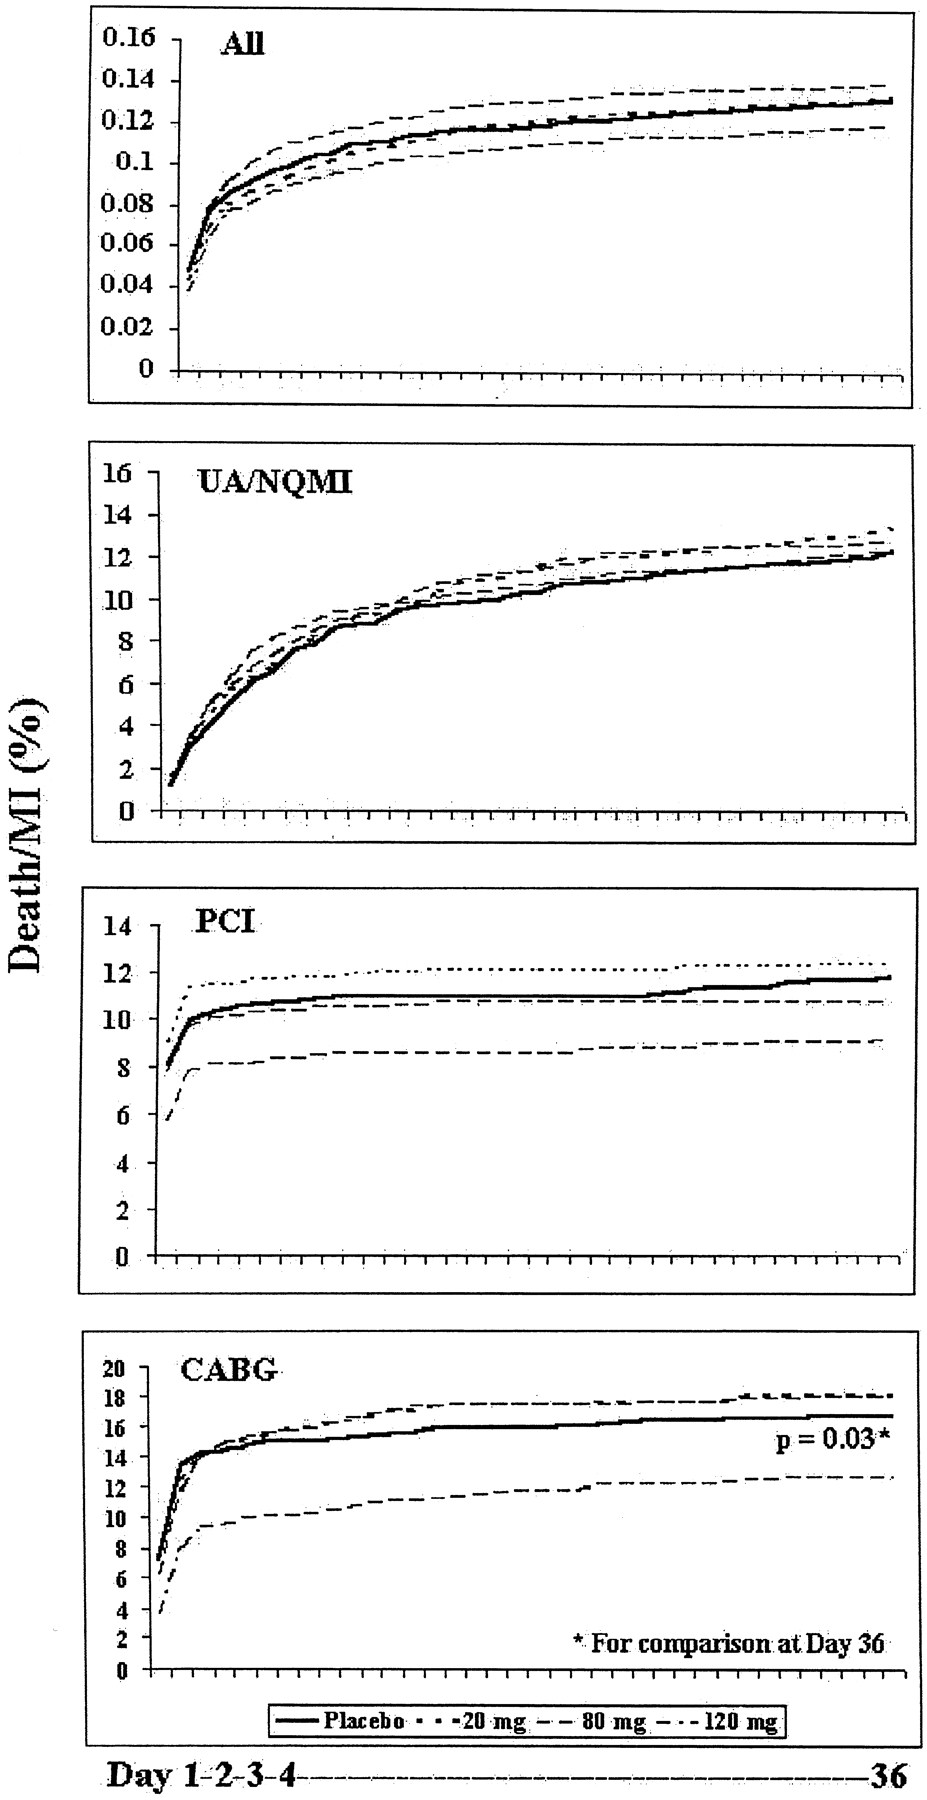 Inhibition of the Sodium-Hydrogen Exchanger With Cariporide to